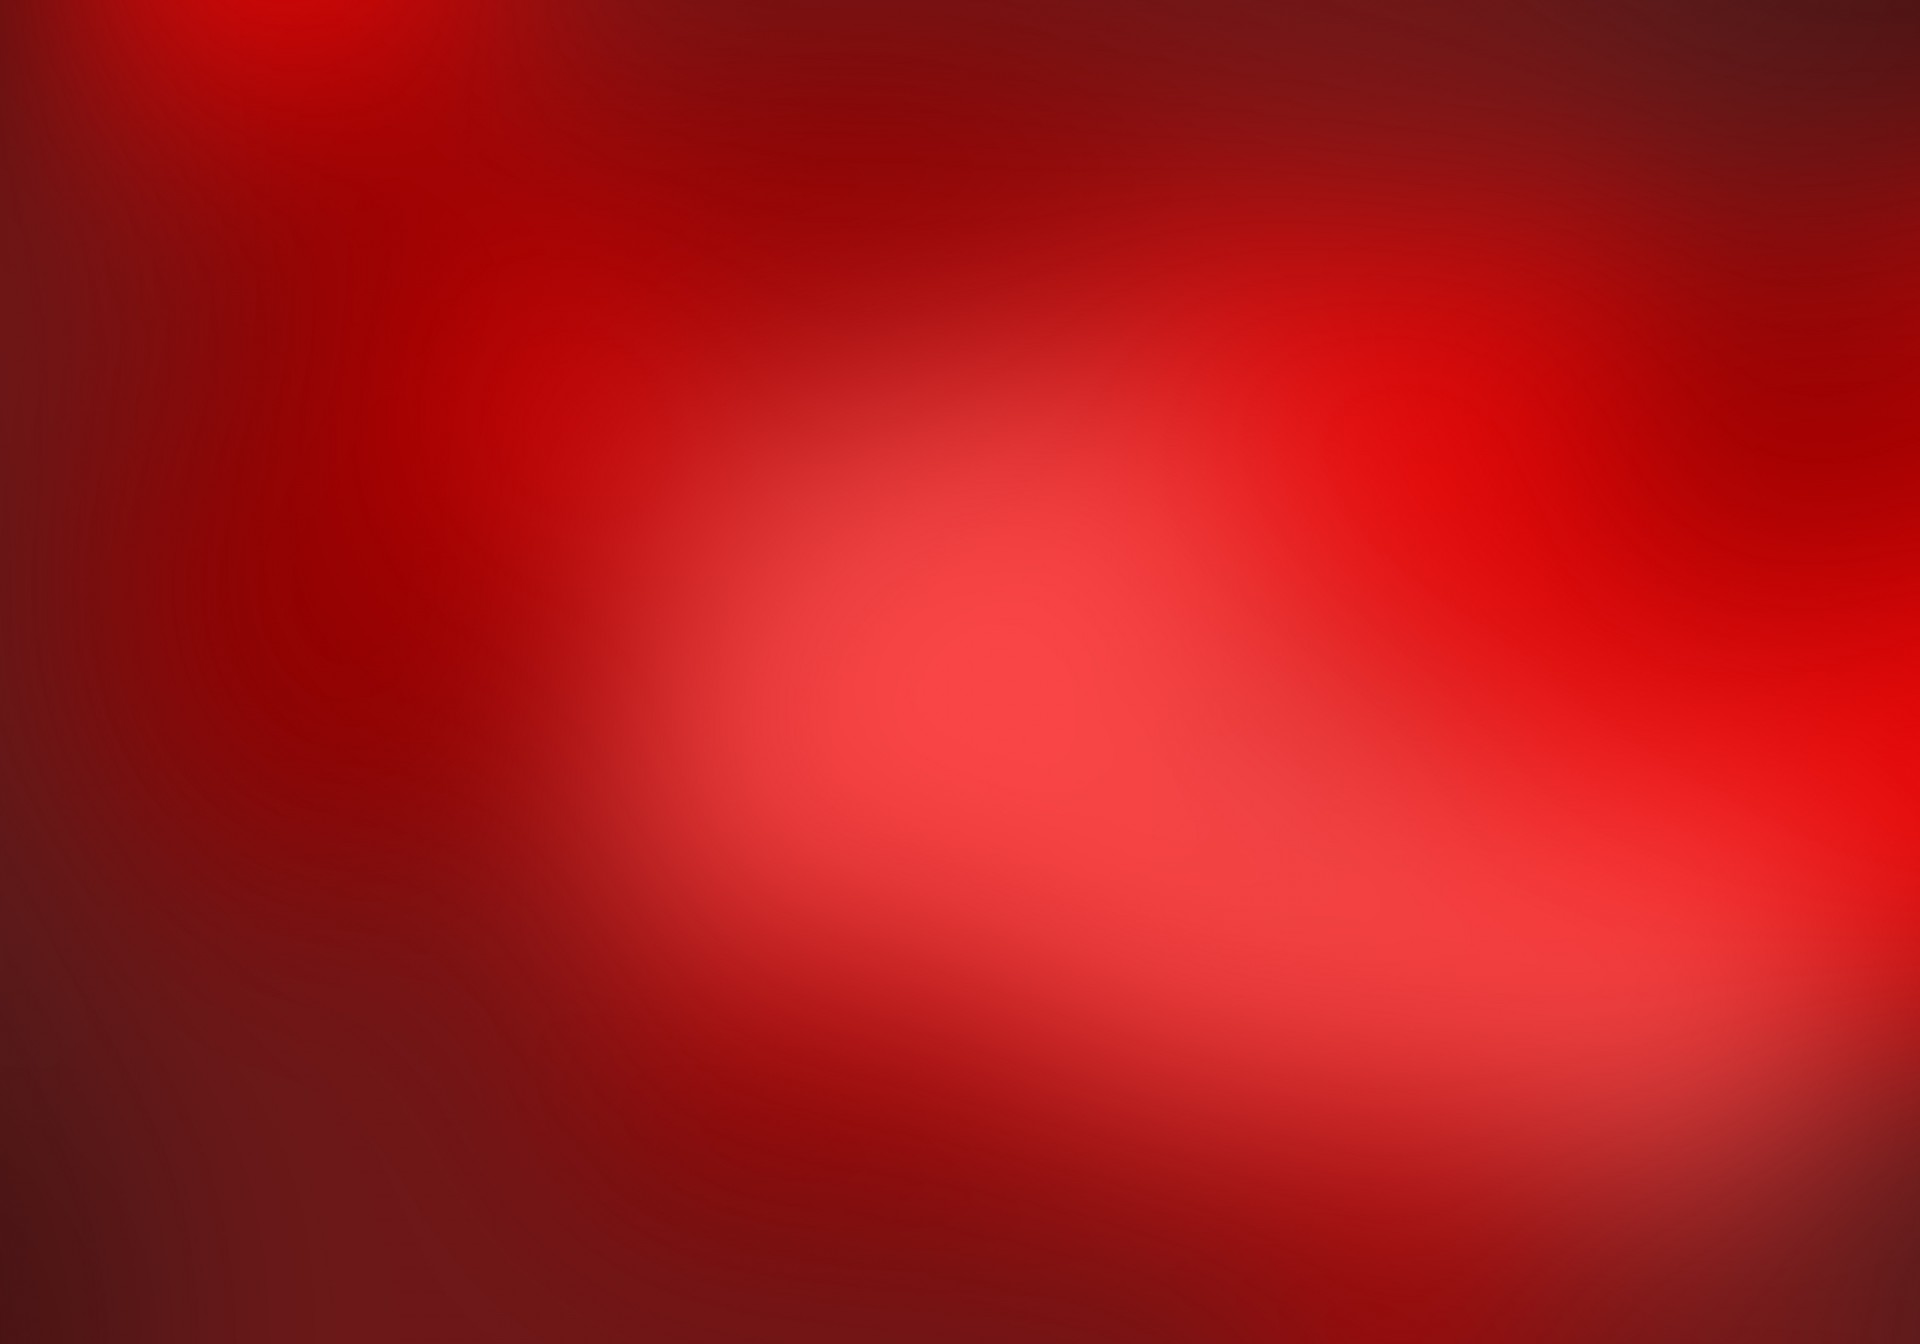 red-background-blur